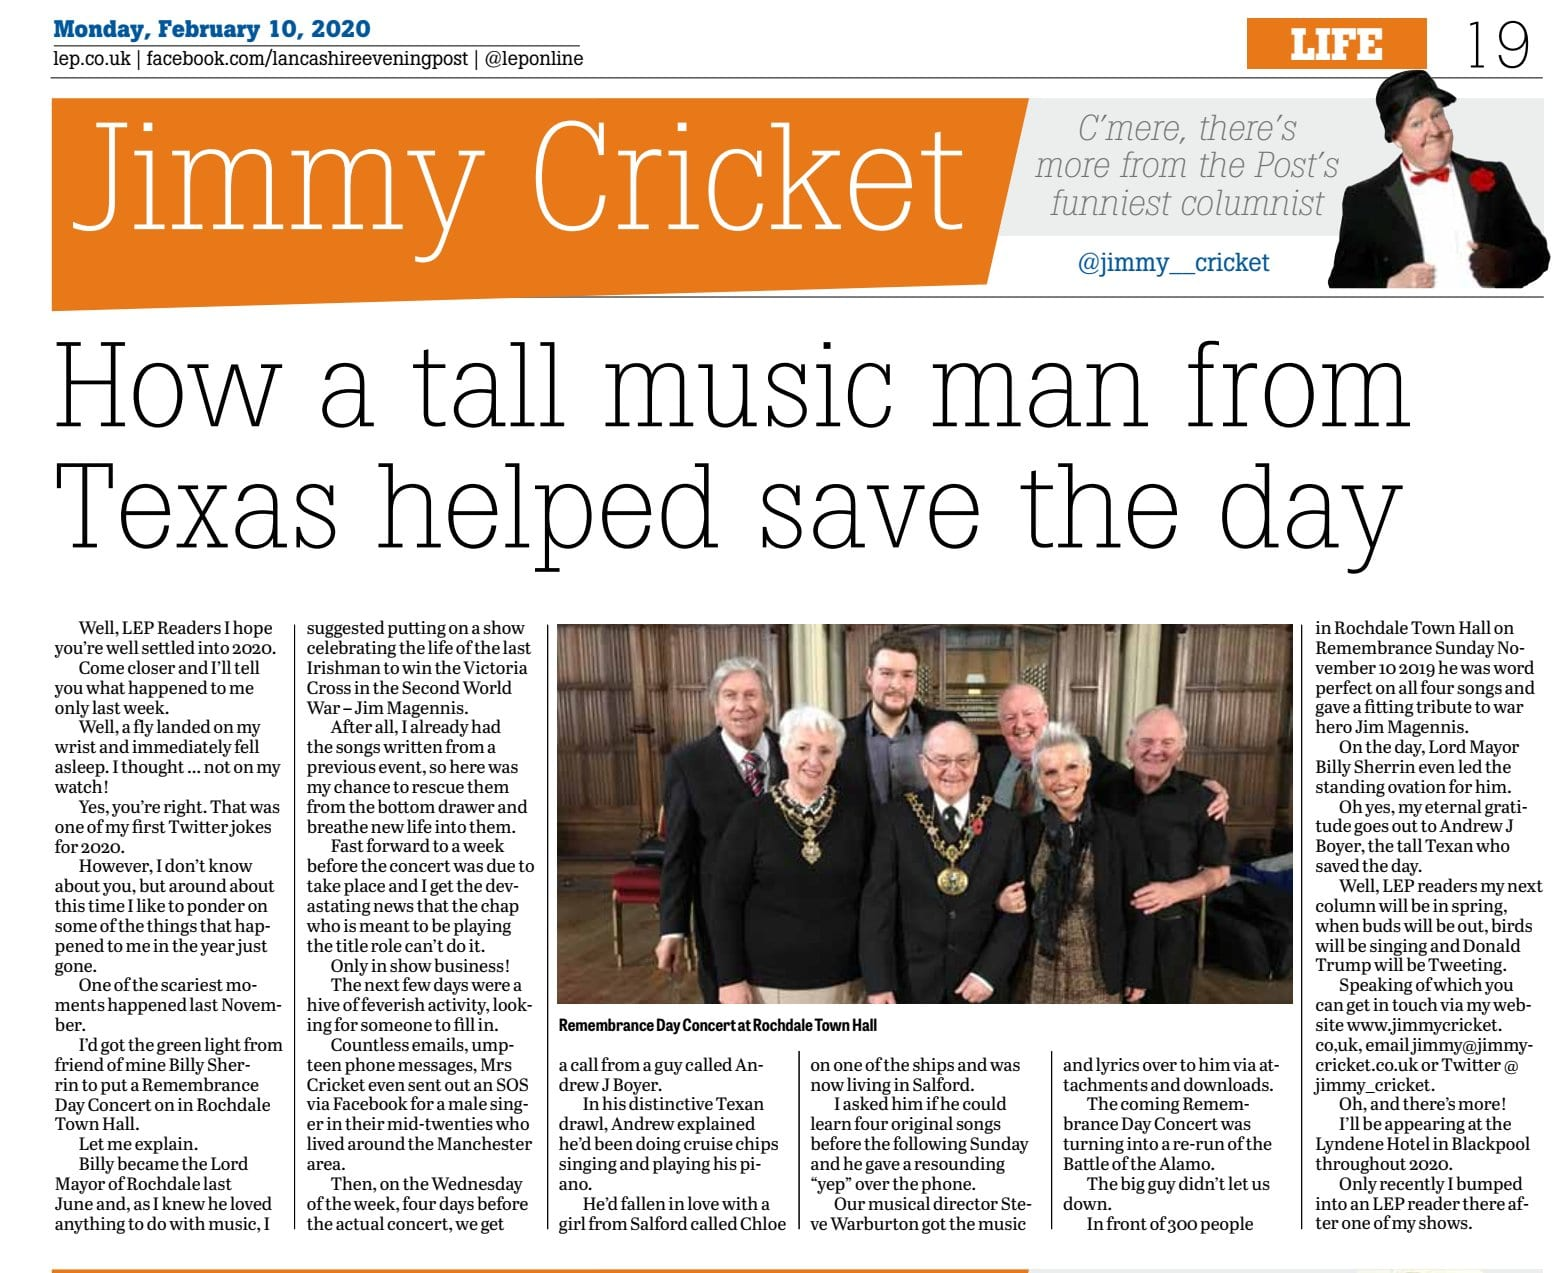 My Feb @leponline column folks, here I tell how at the very last minute, the Texan @AndrewJBoyer with his great voice, saved the Remembrance Day Concert at the Rochdale Town Hall for me and my fellow performers, which was in aid of the Lord Mayor, Billy Sherrin's Charities!